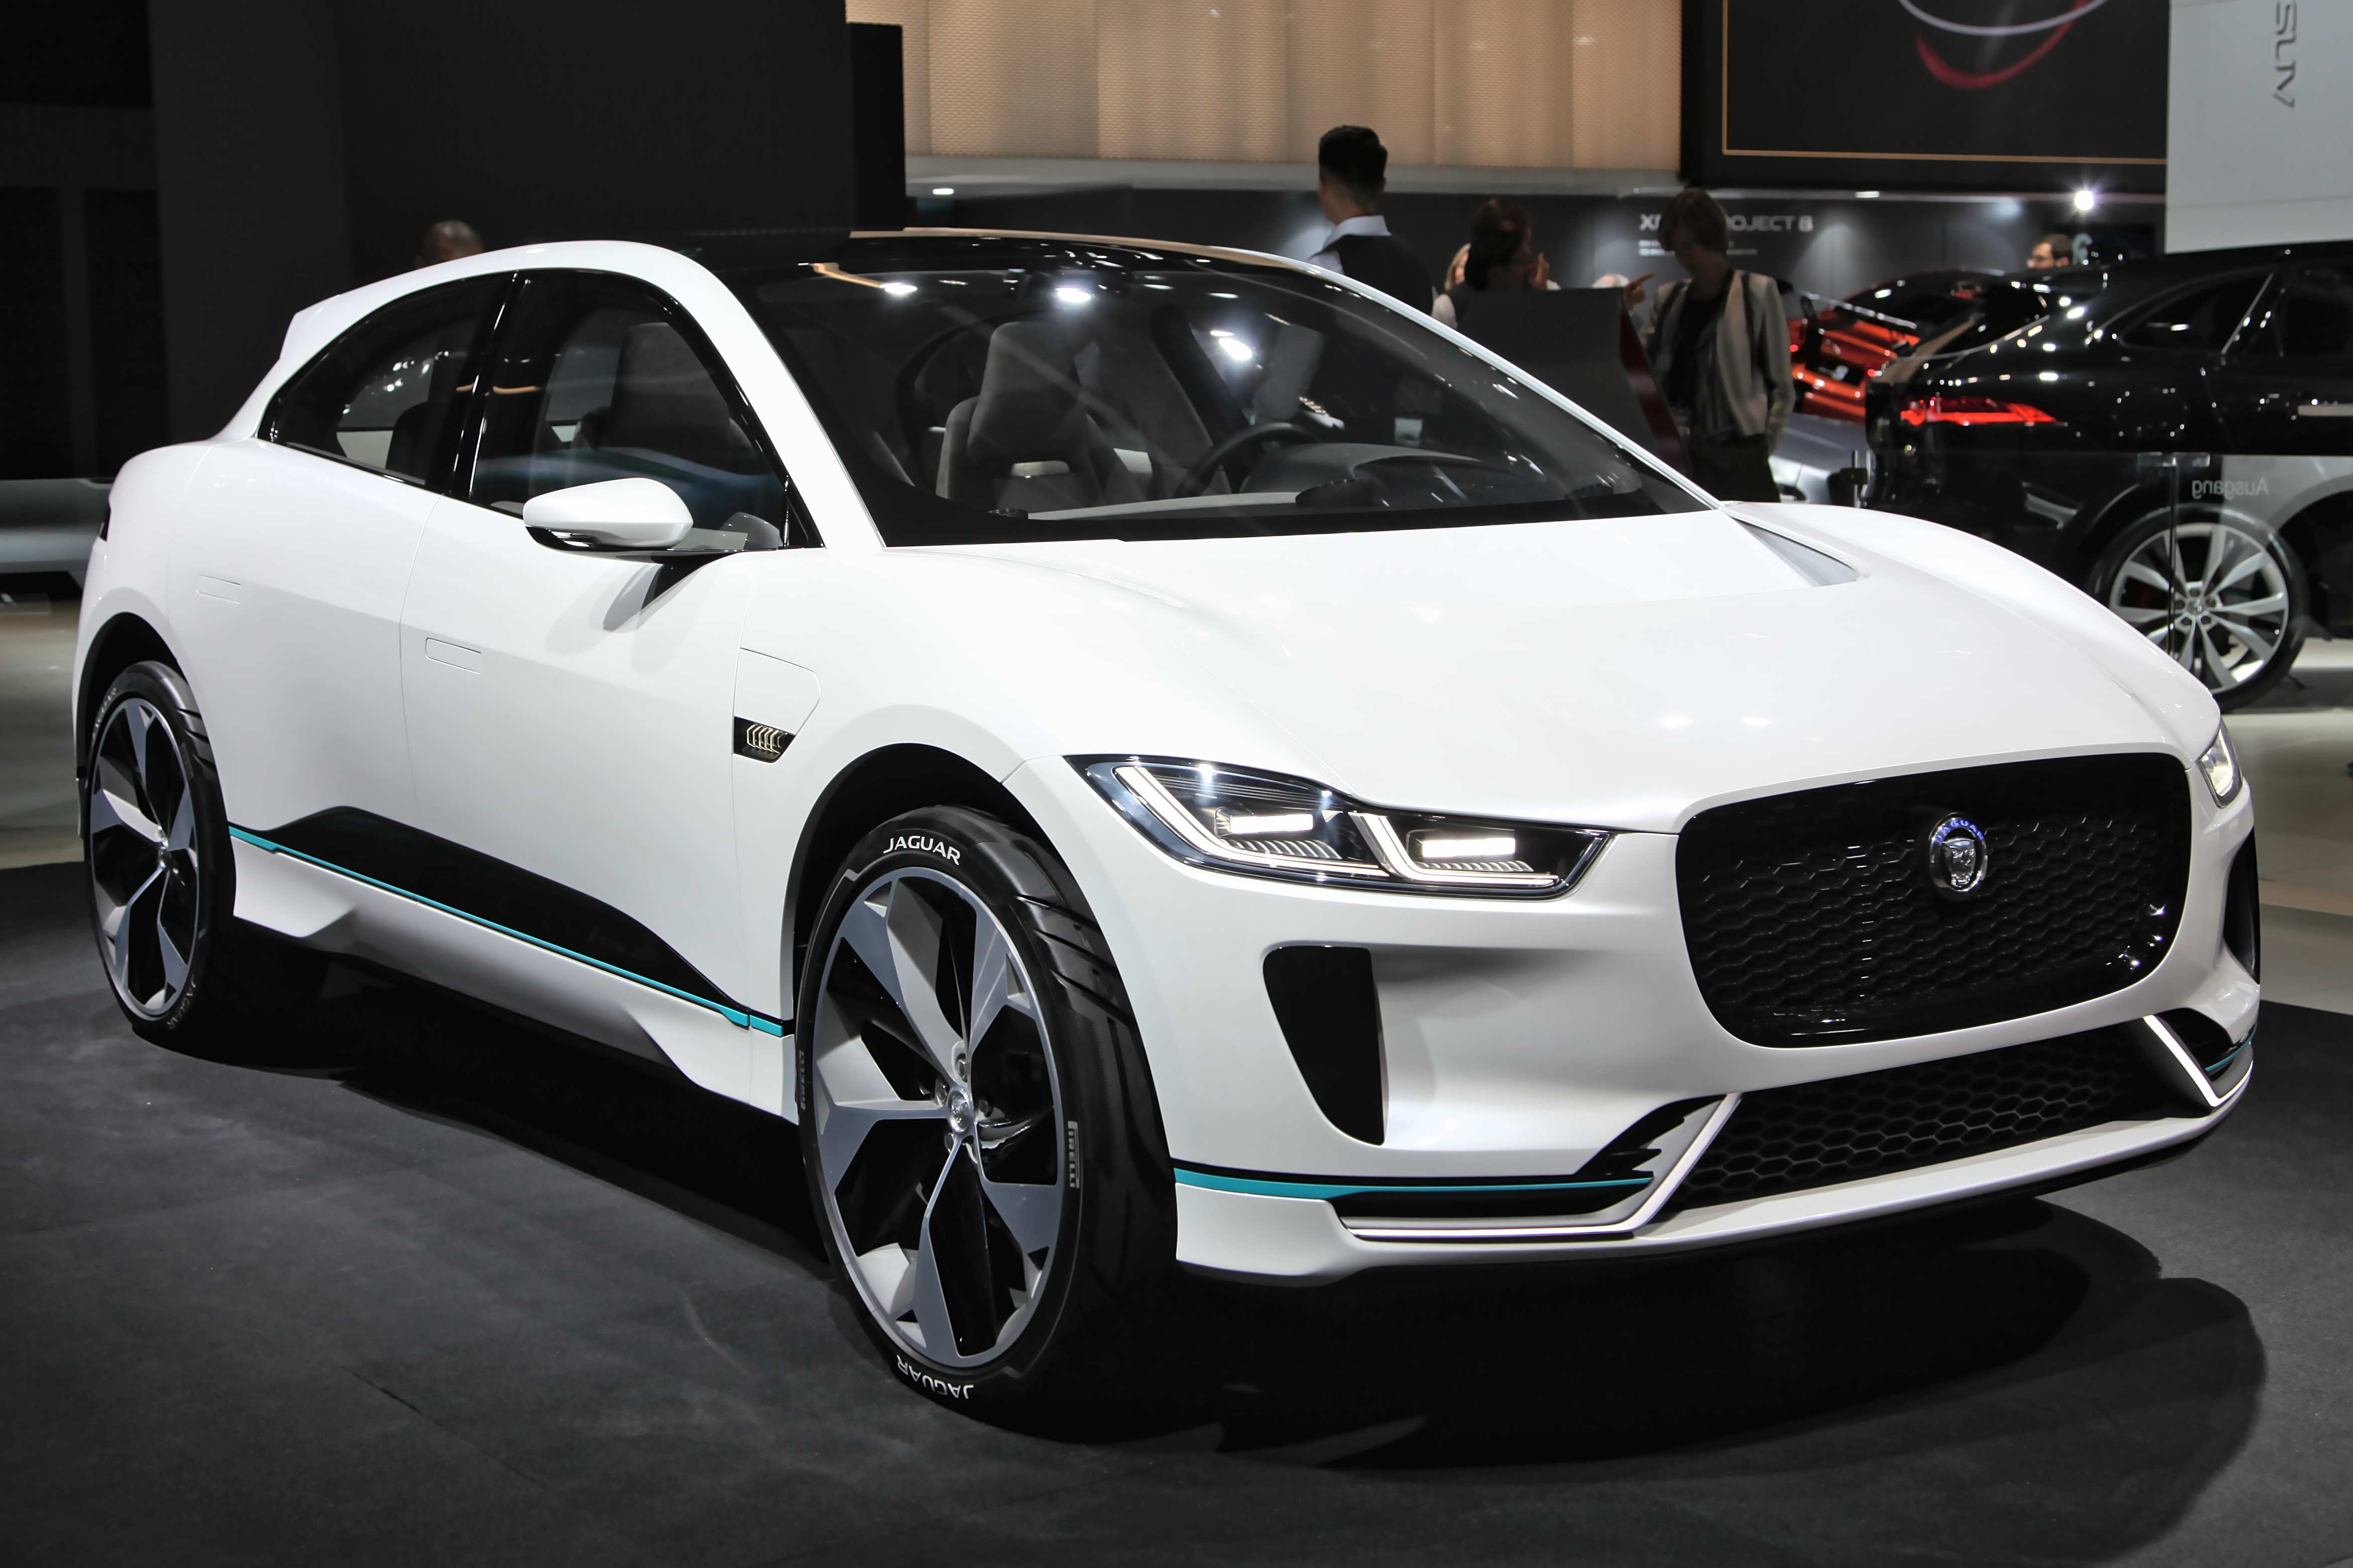 70 New The Jaguar Electric 2019 Concept Rumors with The Jaguar Electric 2019 Concept